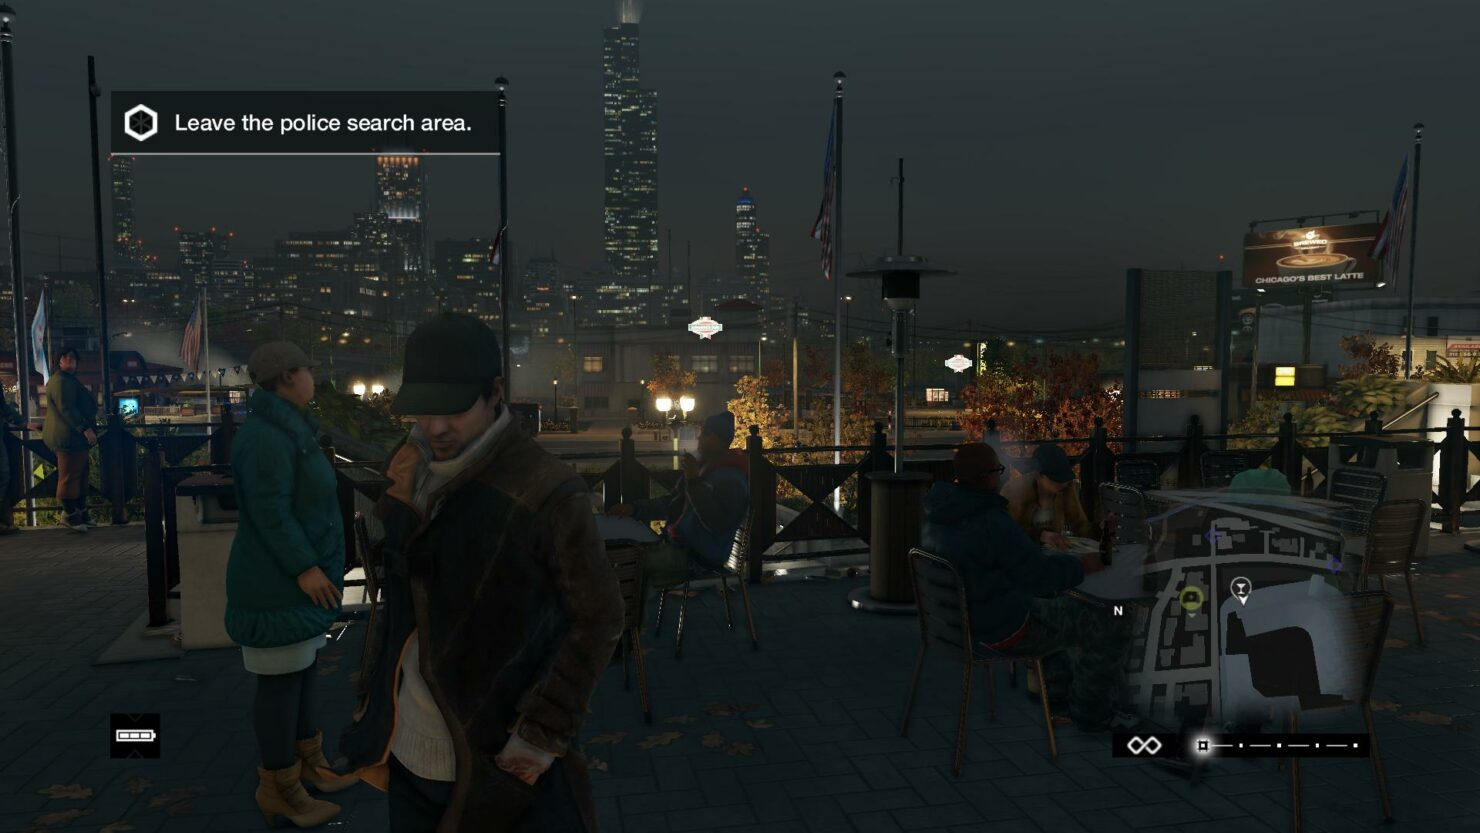 watch_dogs-2014-05-24-11-29-09-82